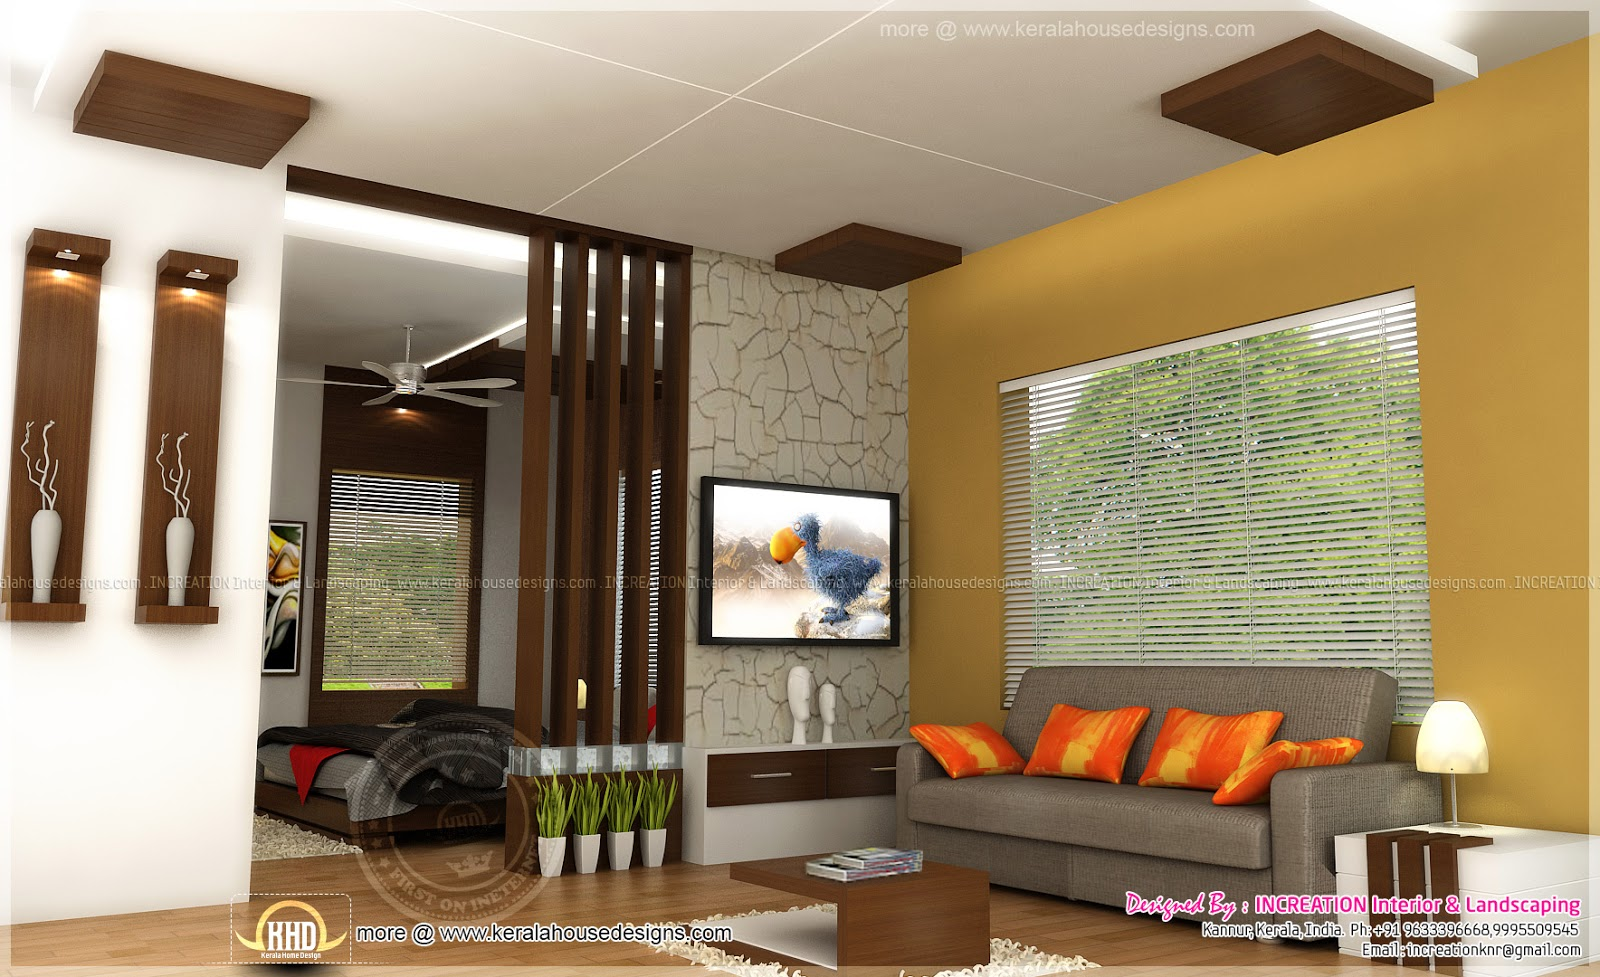 Interior designs from kannur kerala kerala home design for Interior designs pictures